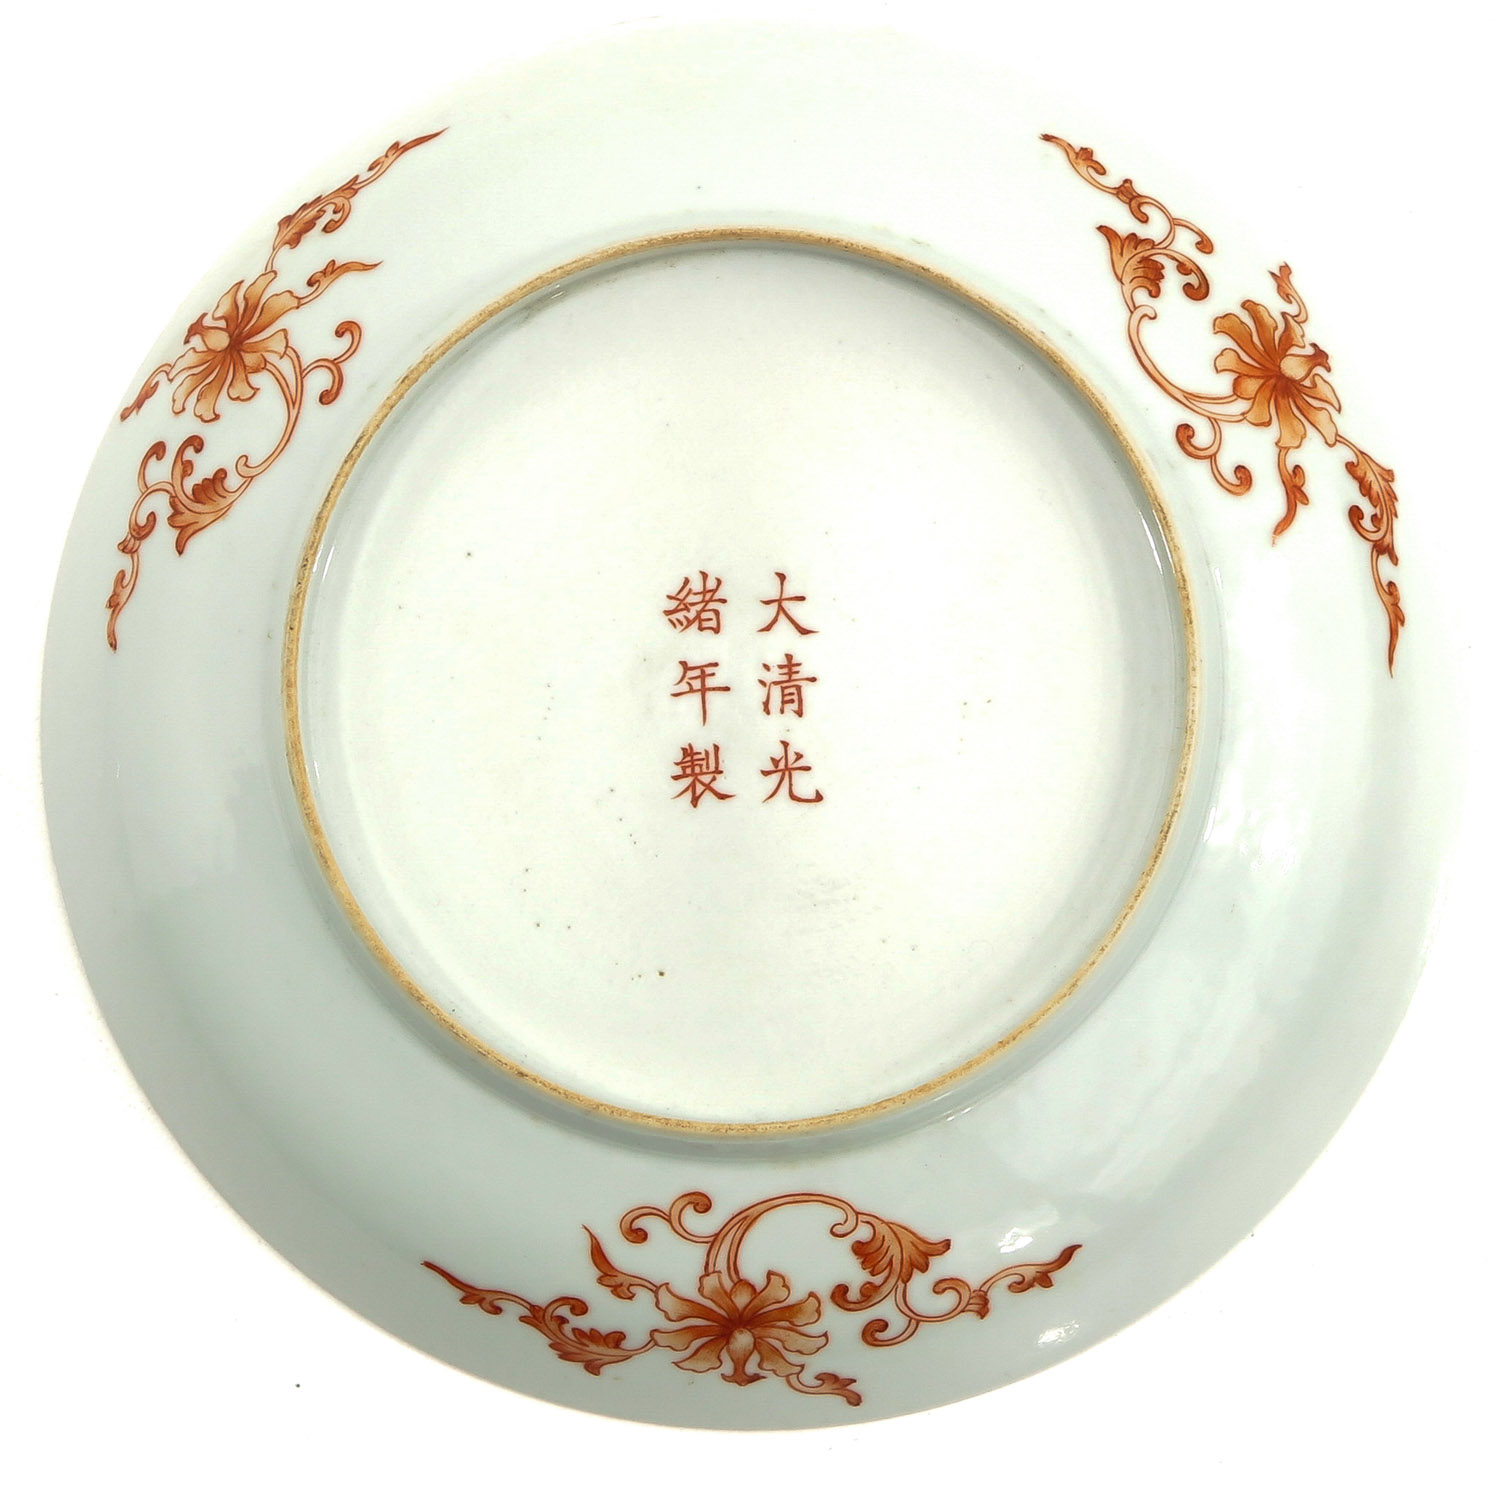 A Pair of Dragon Decor Plates - Image 6 of 10